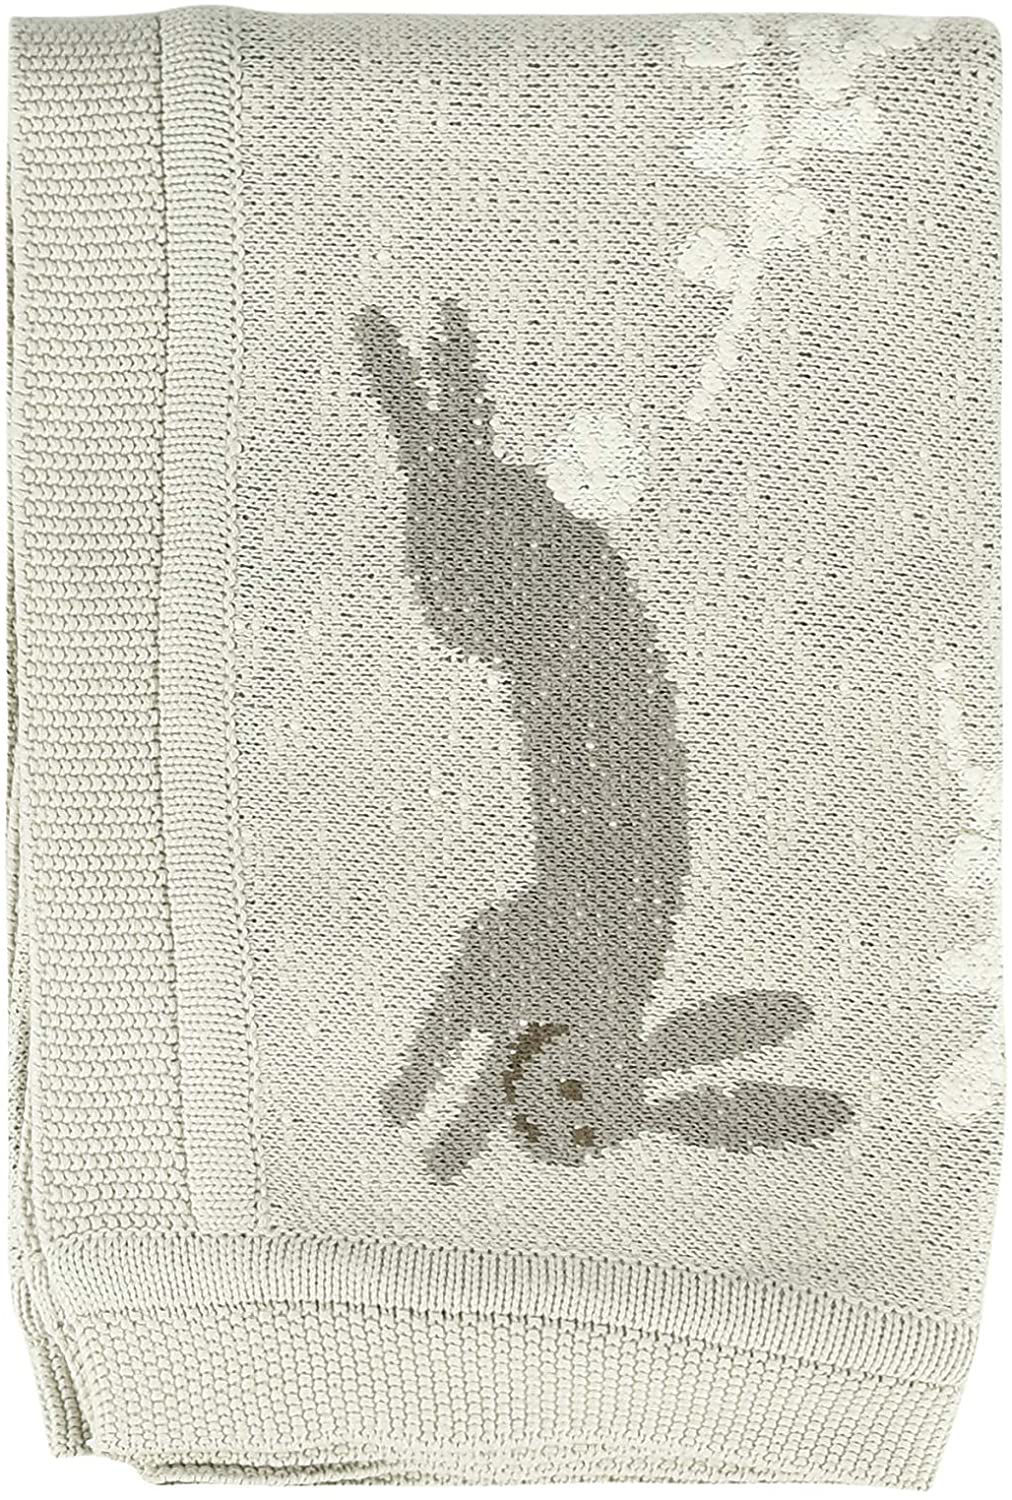 Baby Blanket w/Bunny  by Creative Co-op